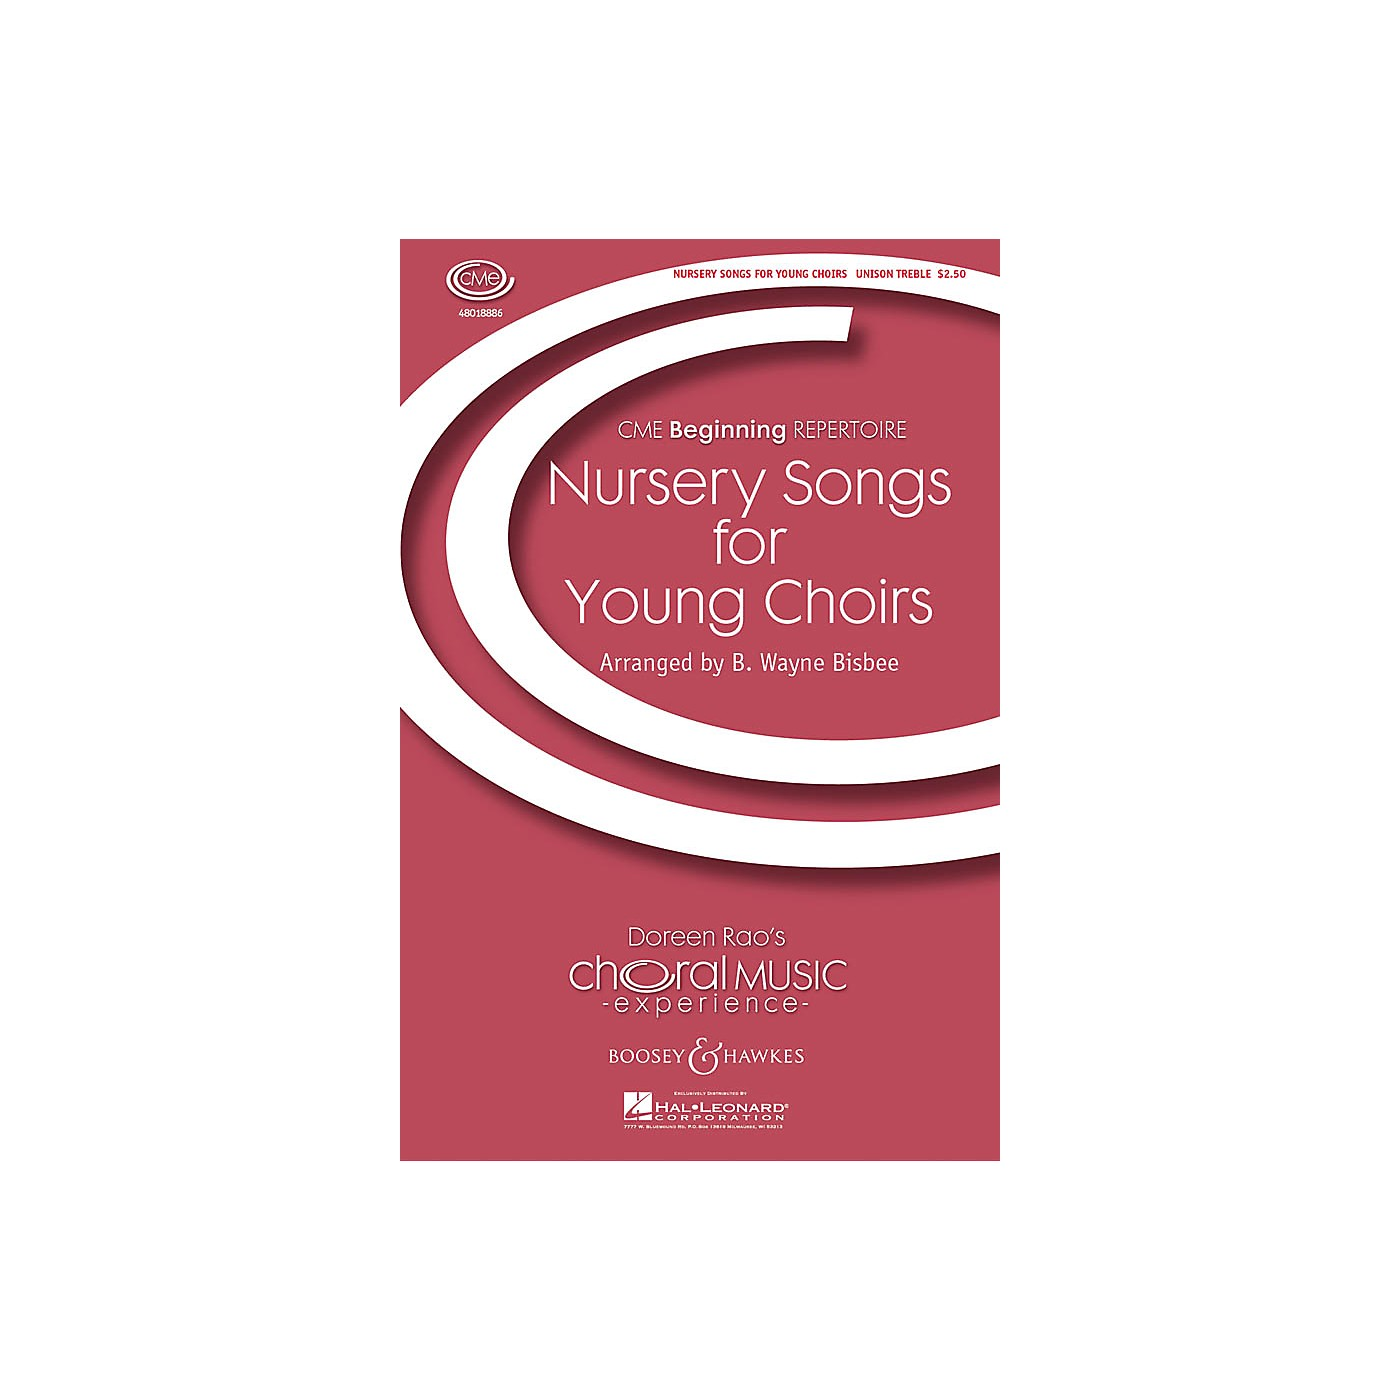 Boosey and Hawkes Nursery Songs for Young Choirs (CME Beginning) UNIS arranged by B. Wayne Bisbee thumbnail